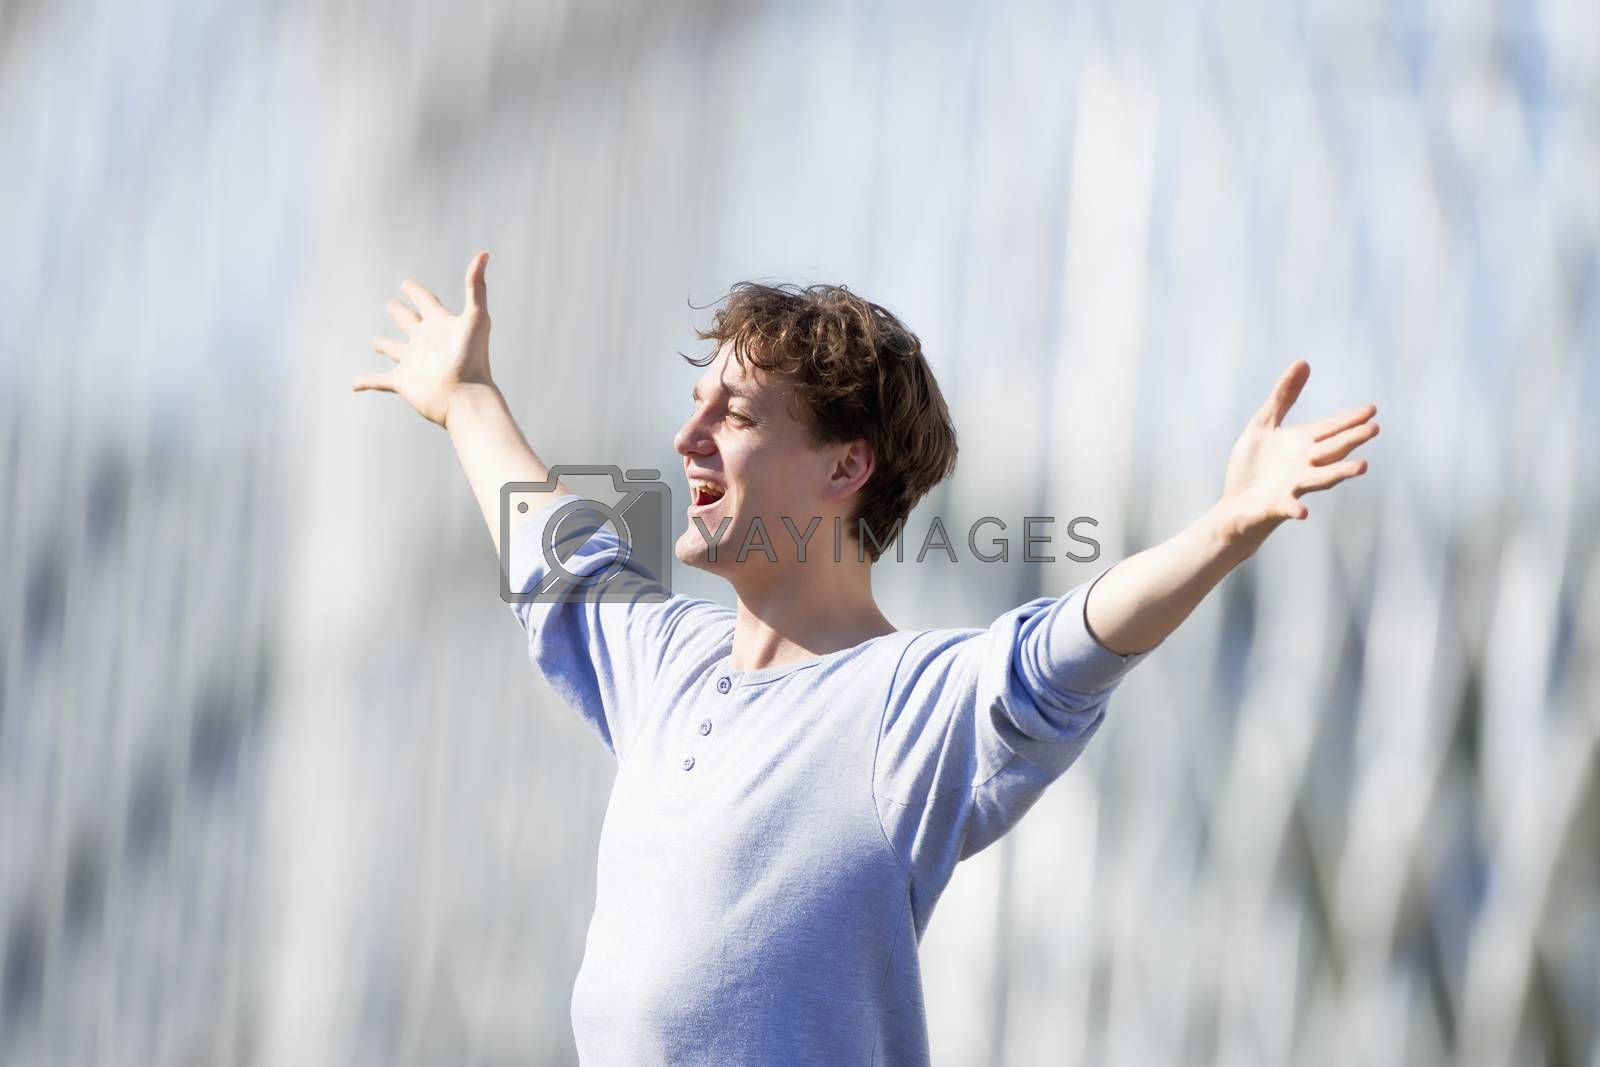 Royalty free image of Excited Young Man Stretching out his Arm in Emotion  by courtyardpix